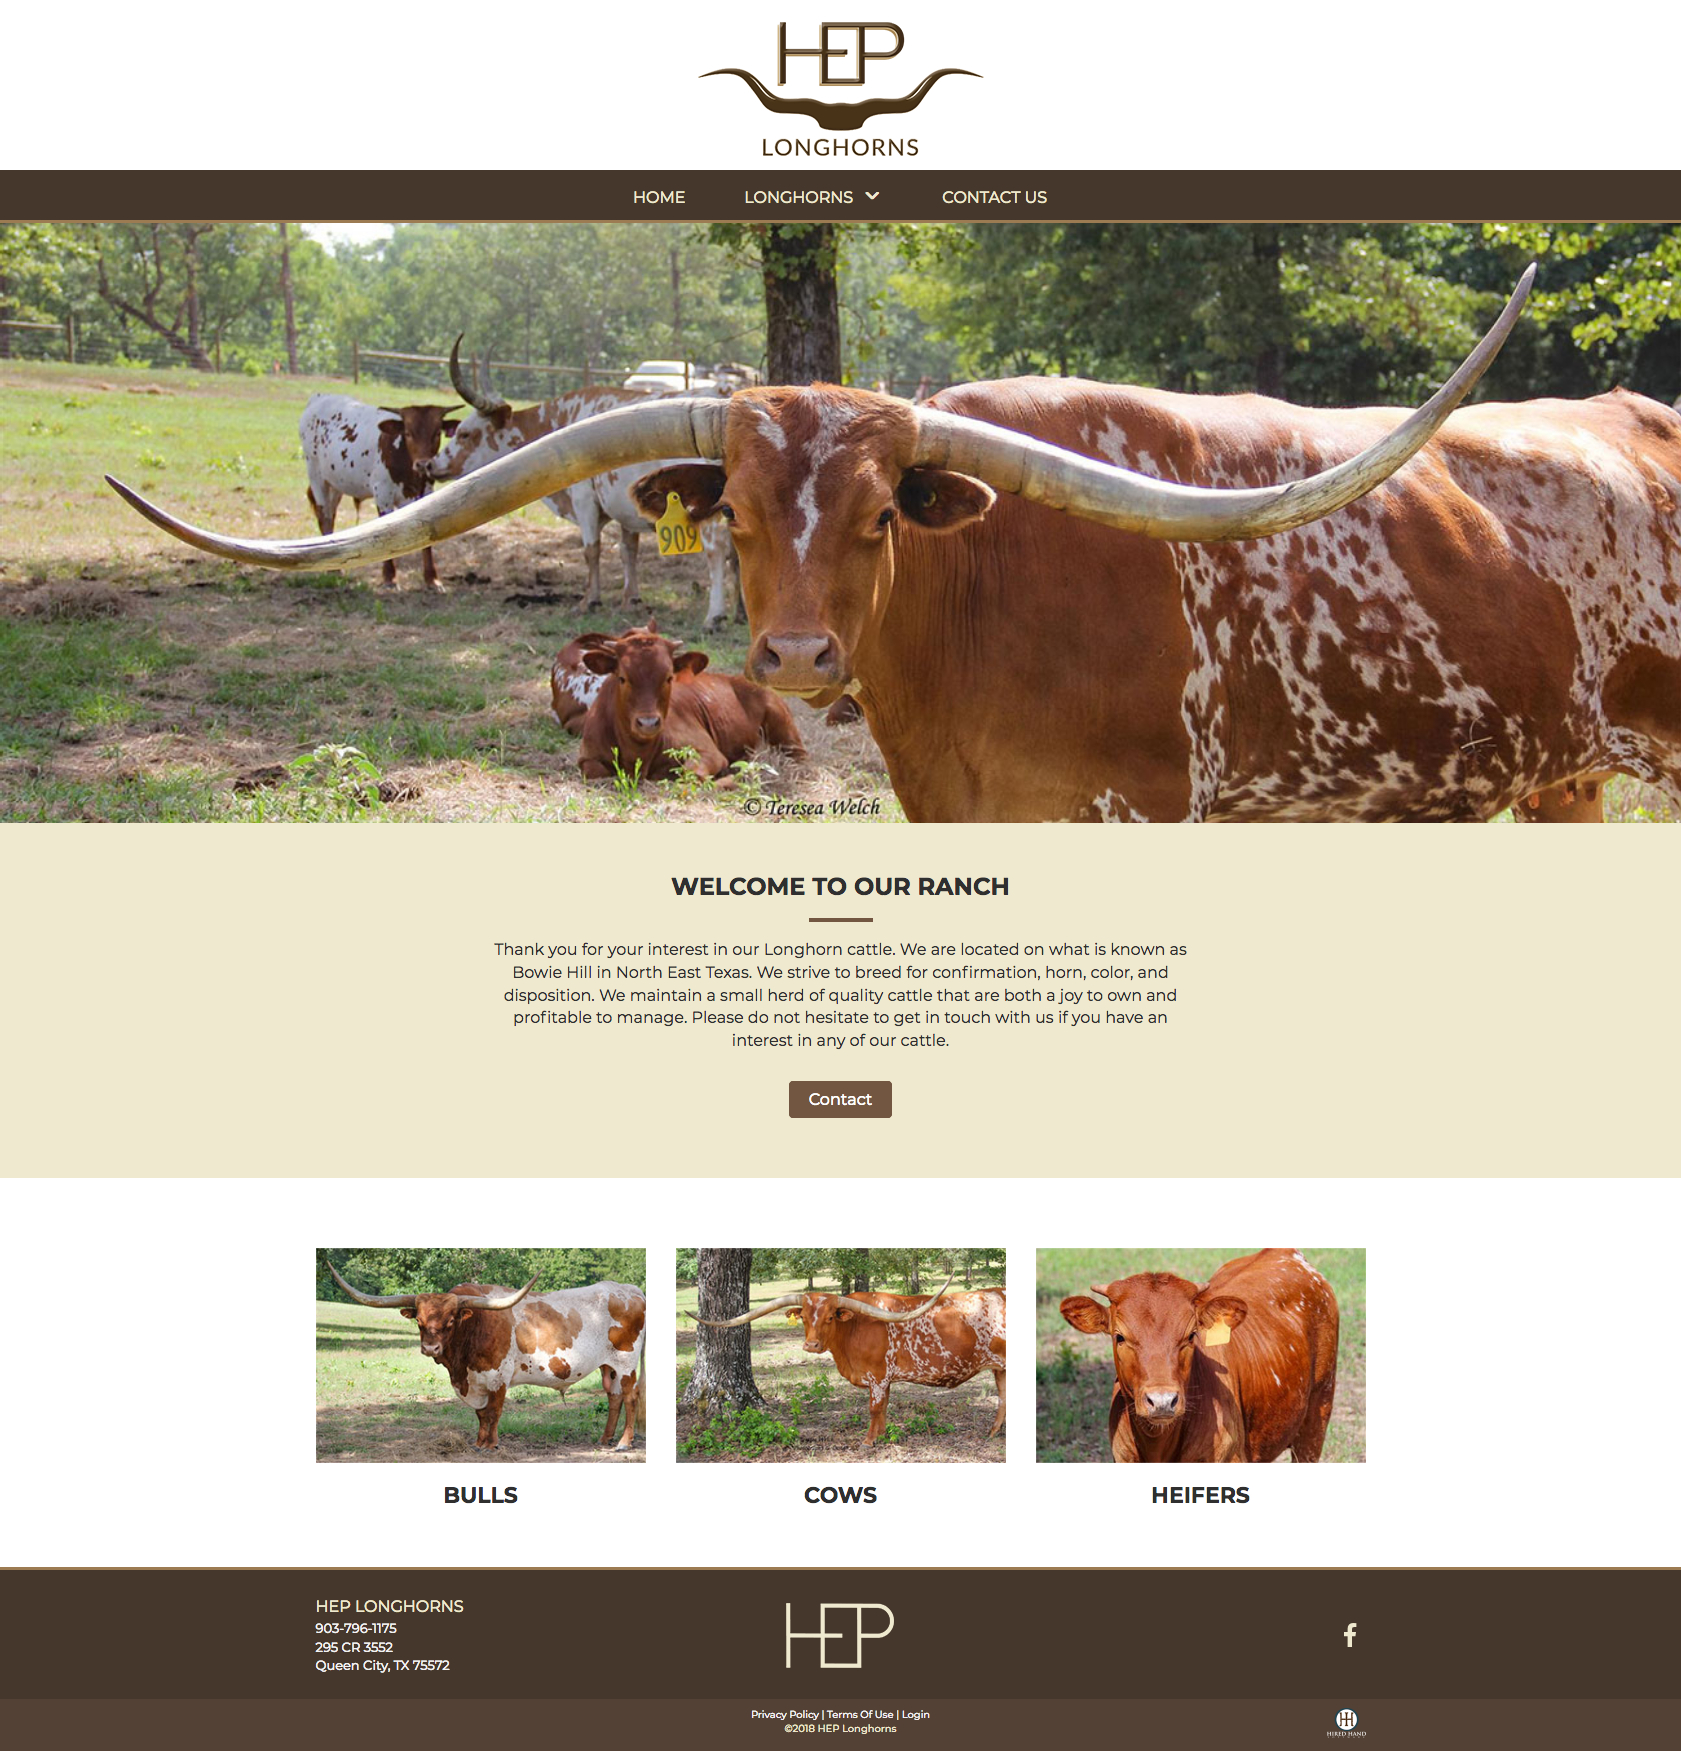 HEP-longhorns_homepage